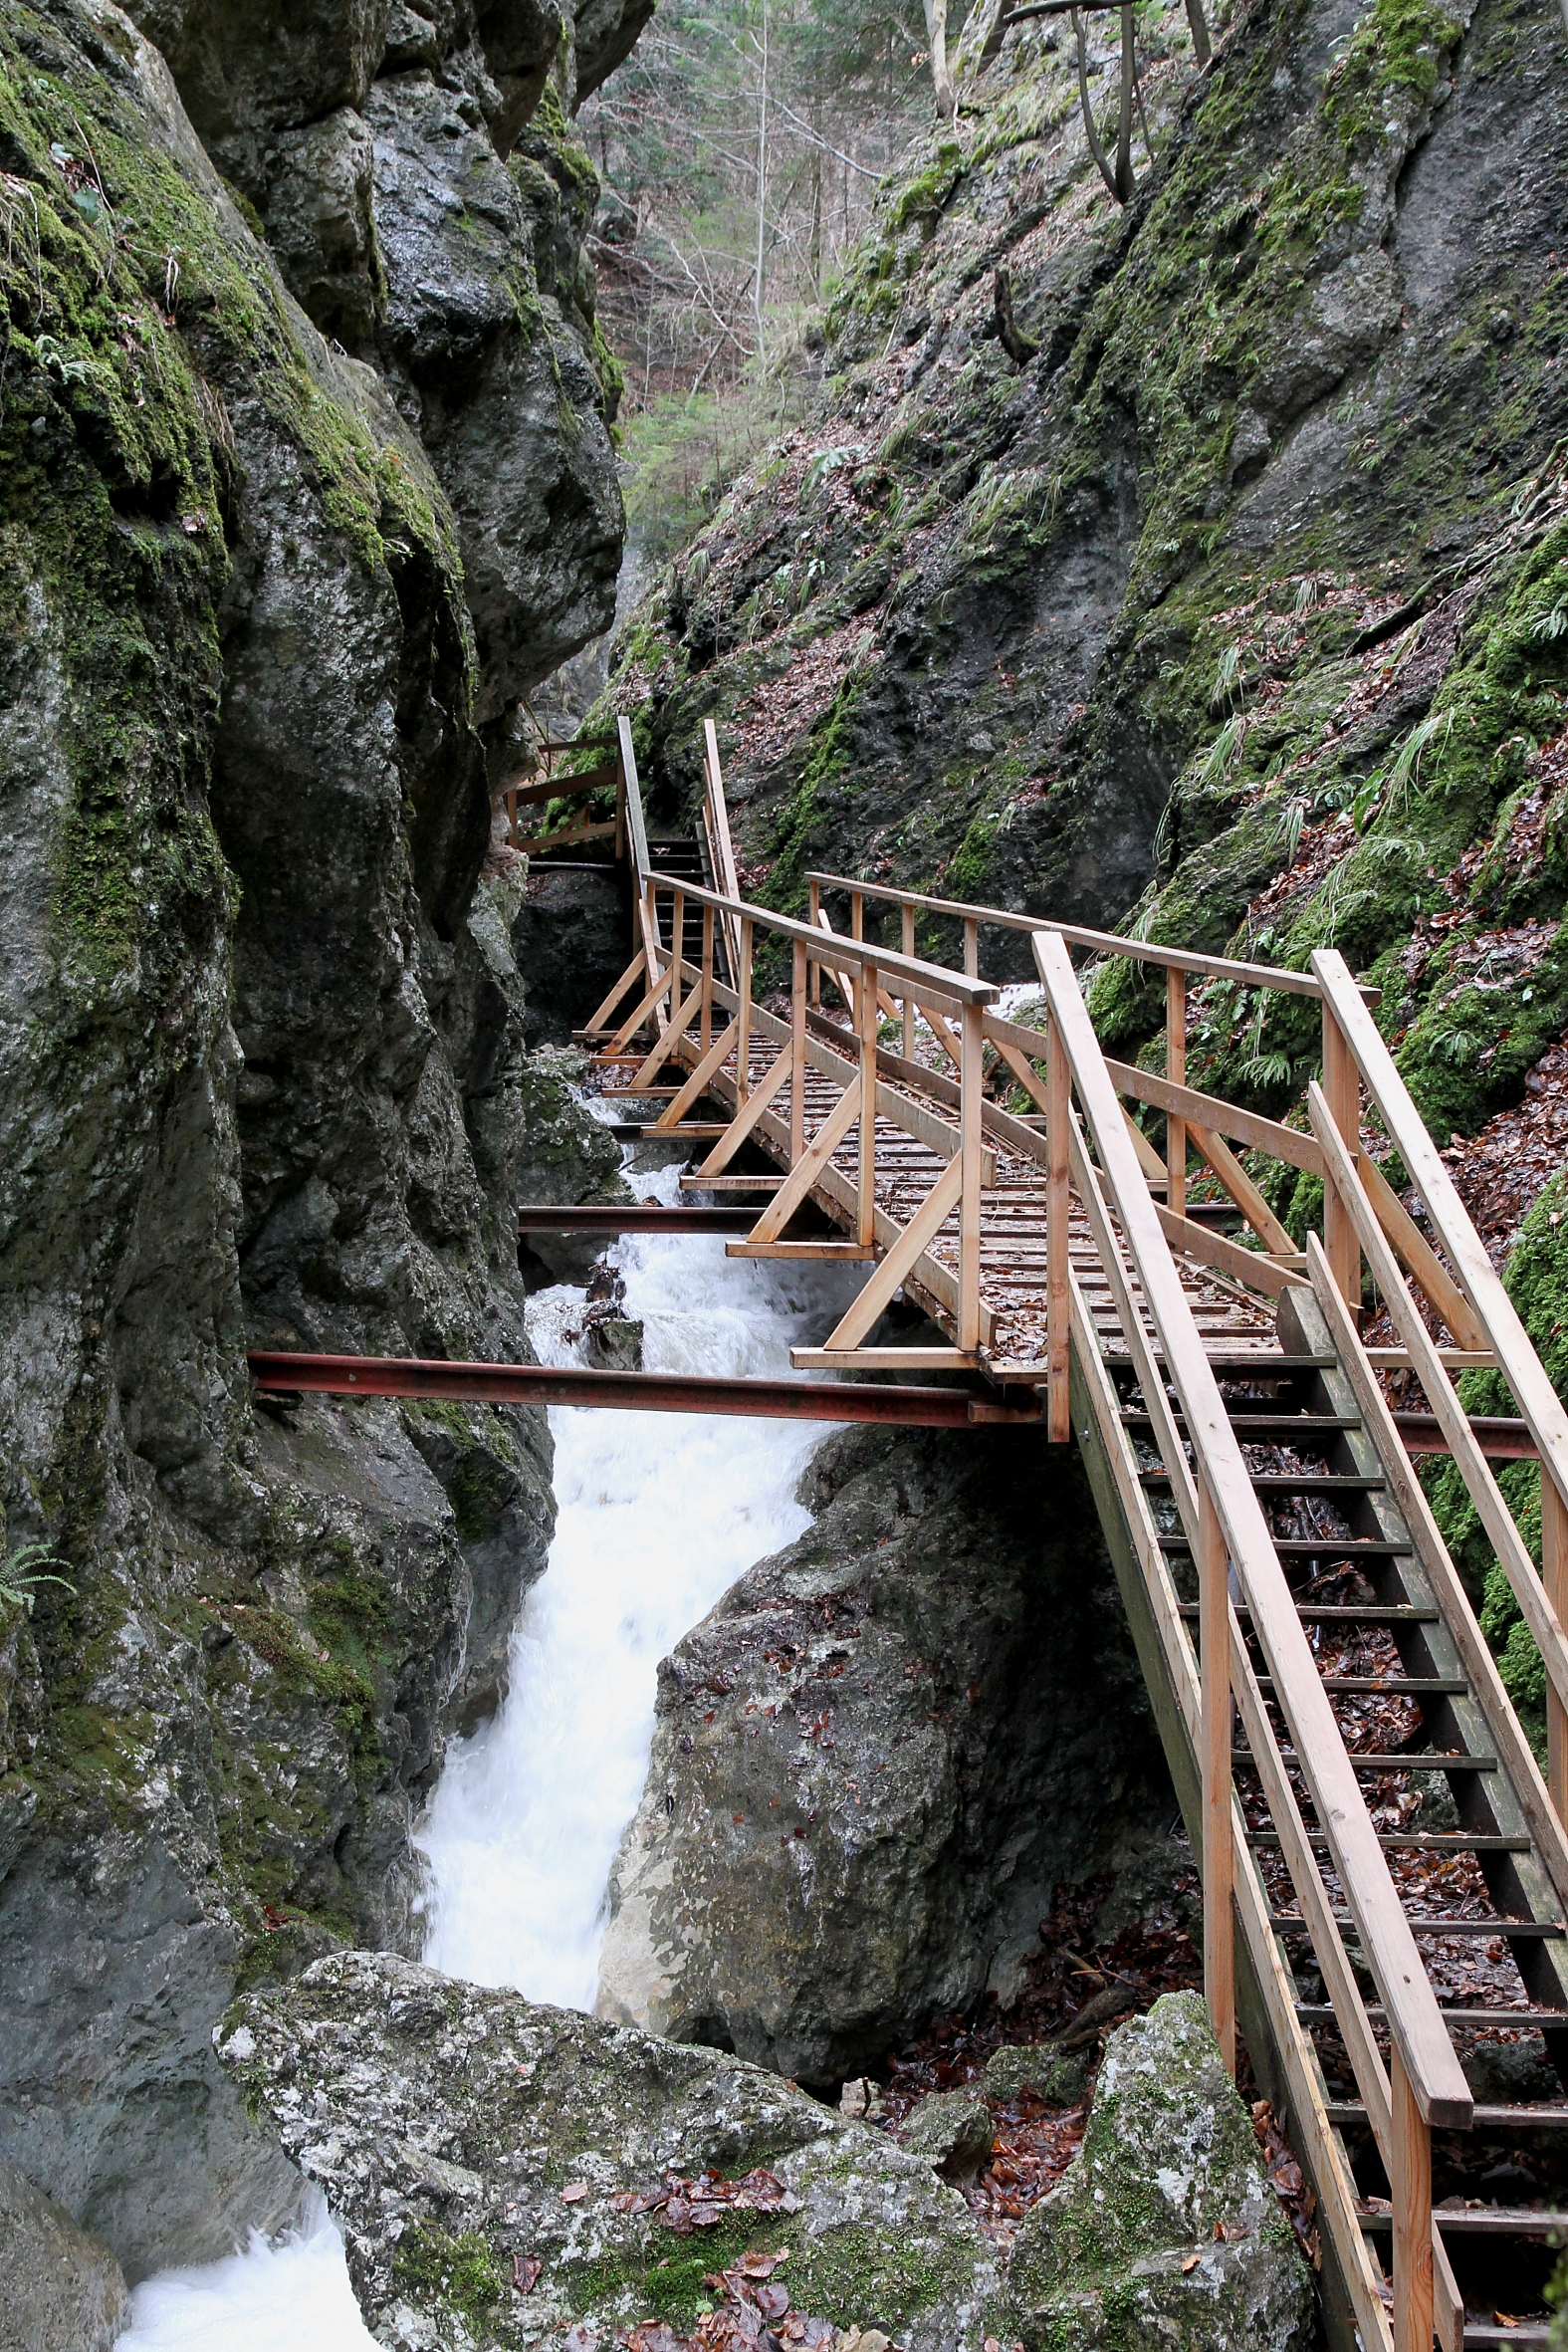 Filefurth Adt Steinwandklamm Mittelbereich3jpg Wikimedia Commons